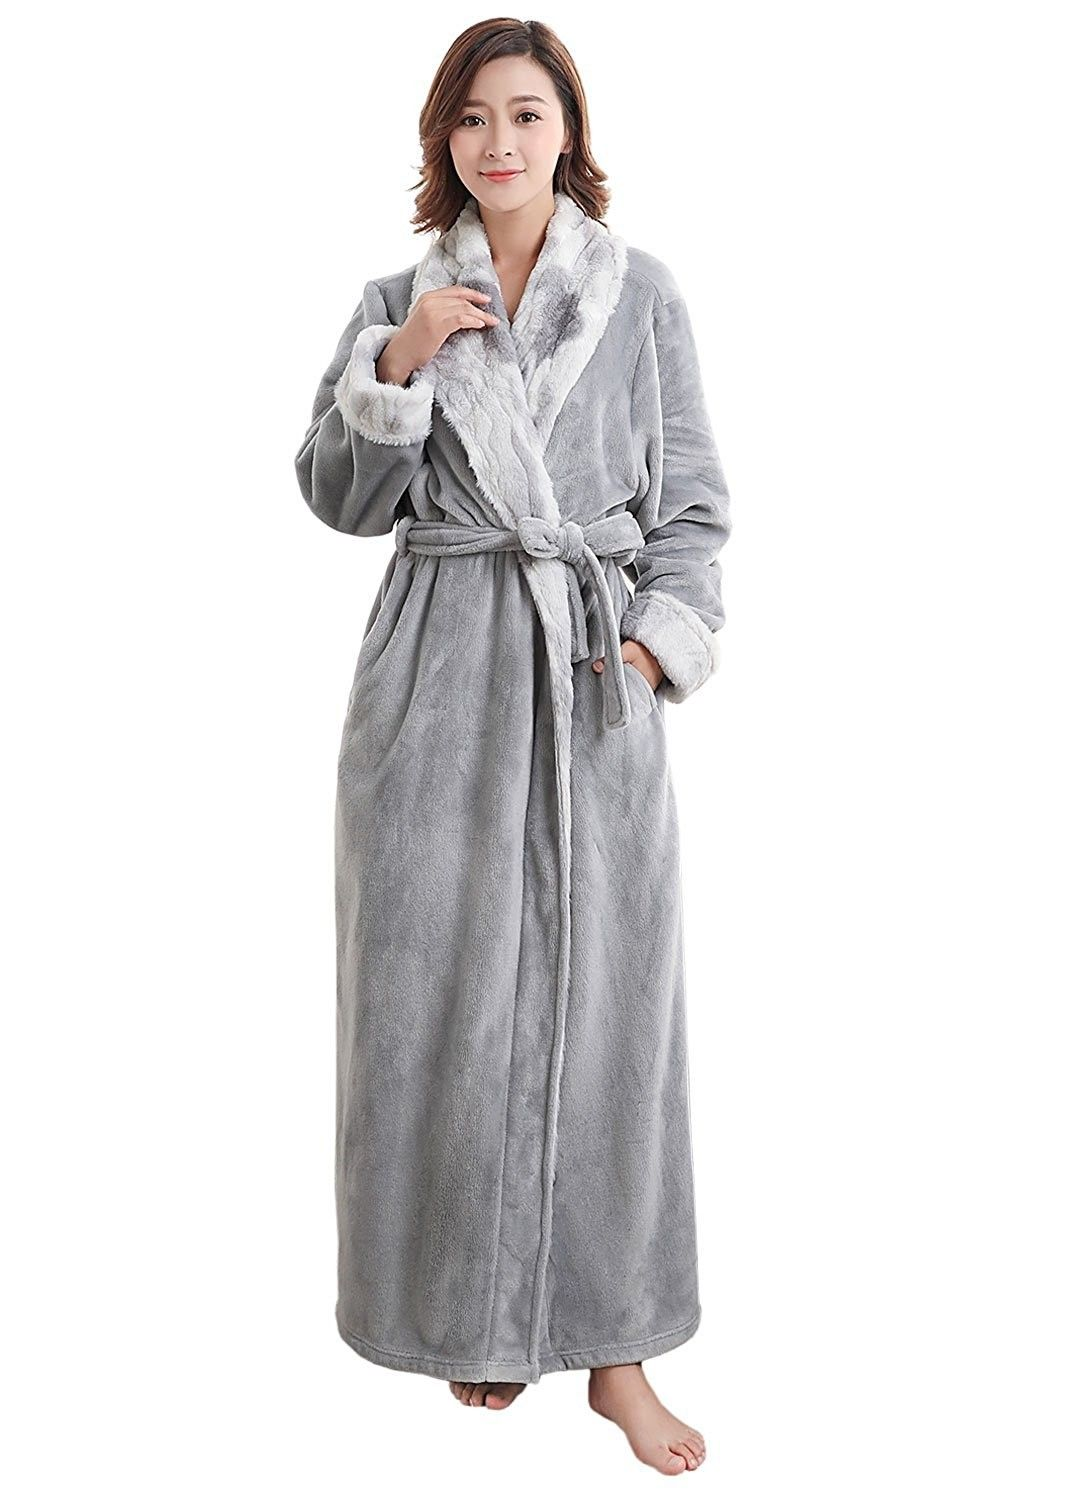 32d7452a09 VI VI Women s Luxurious Fleece Bath Robe Plush Soft Warm Long Terry ...